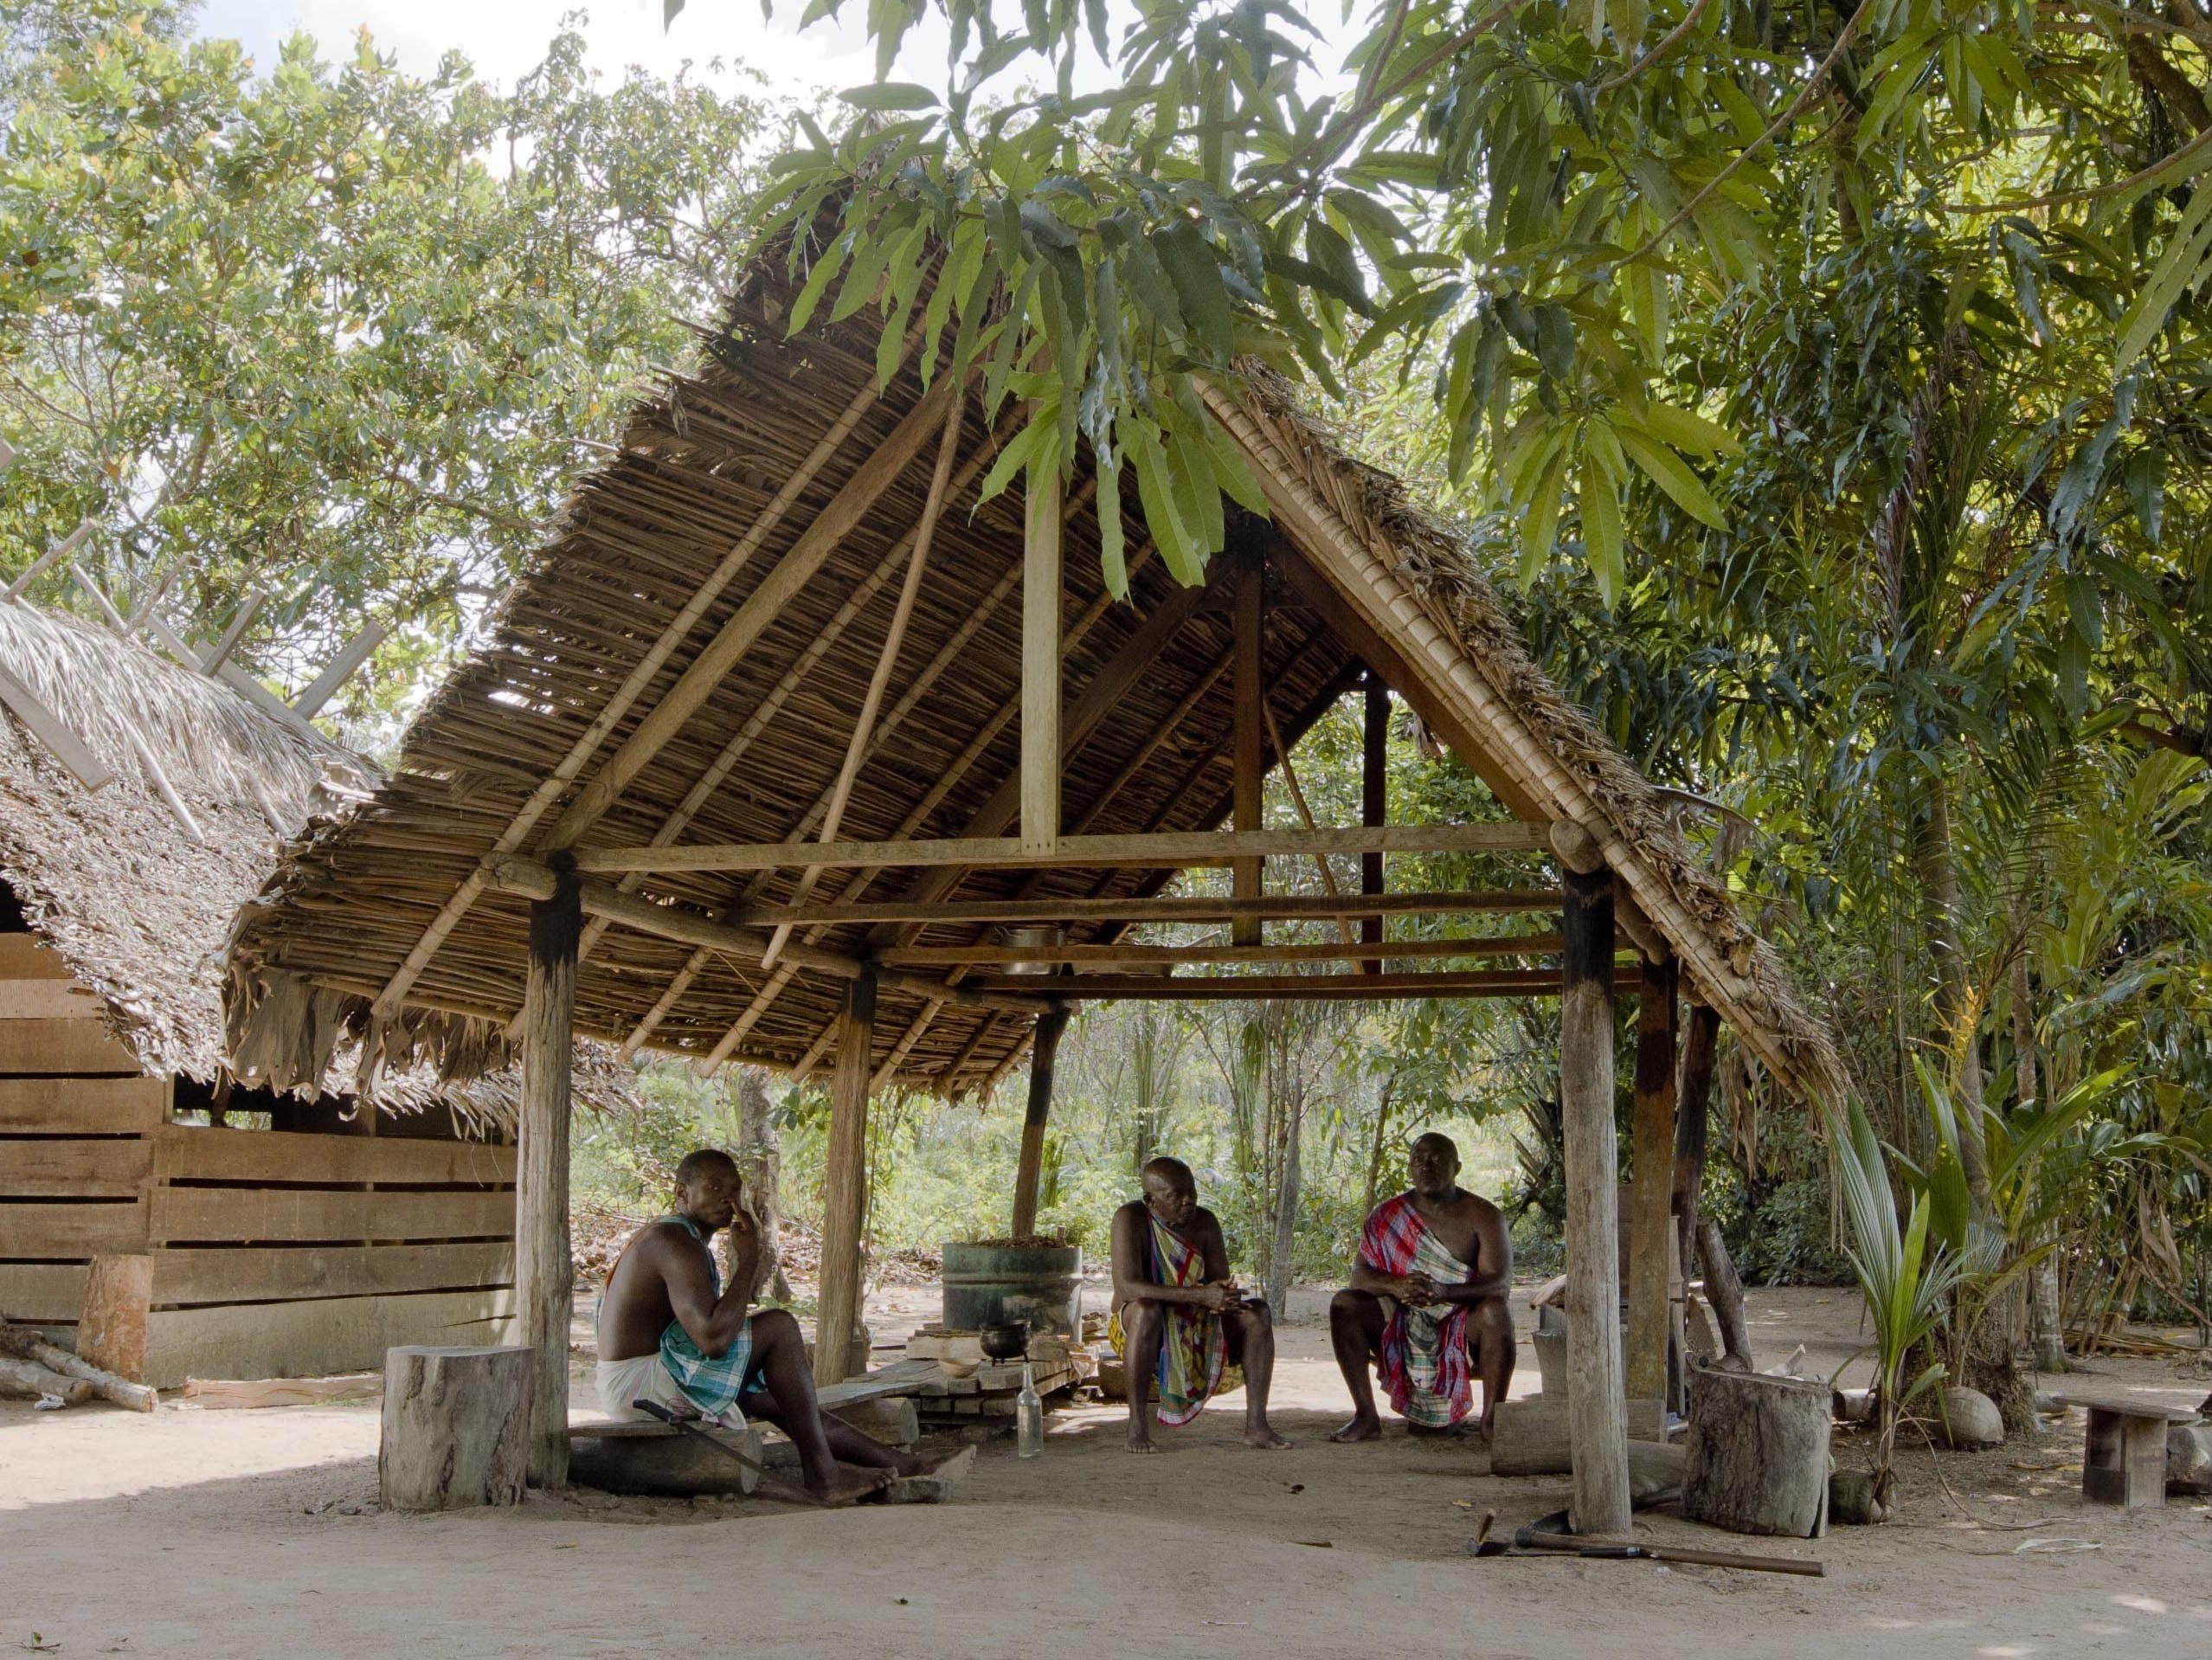 Stones have laws 2018 001 people shelter hut clearing CROP